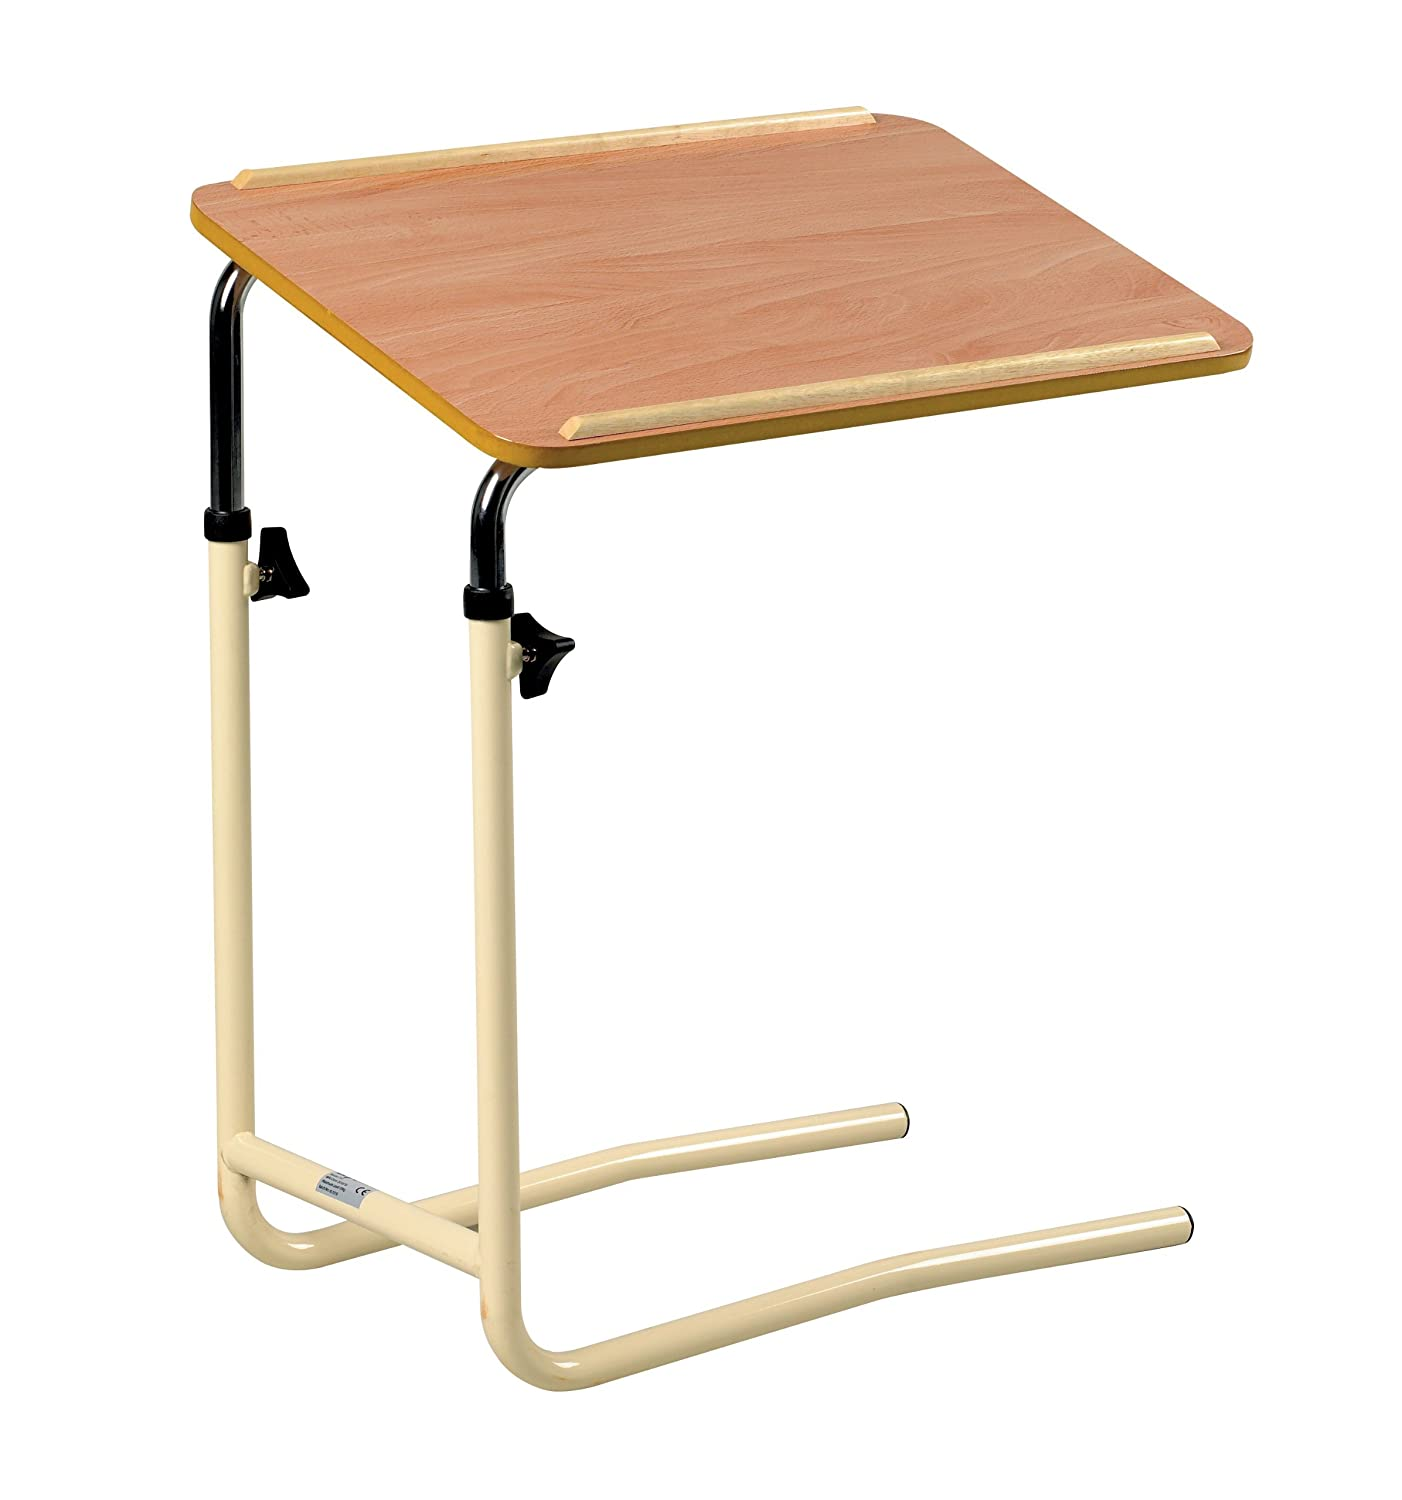 Diy overbed table - Patterson Medical Overbed Table